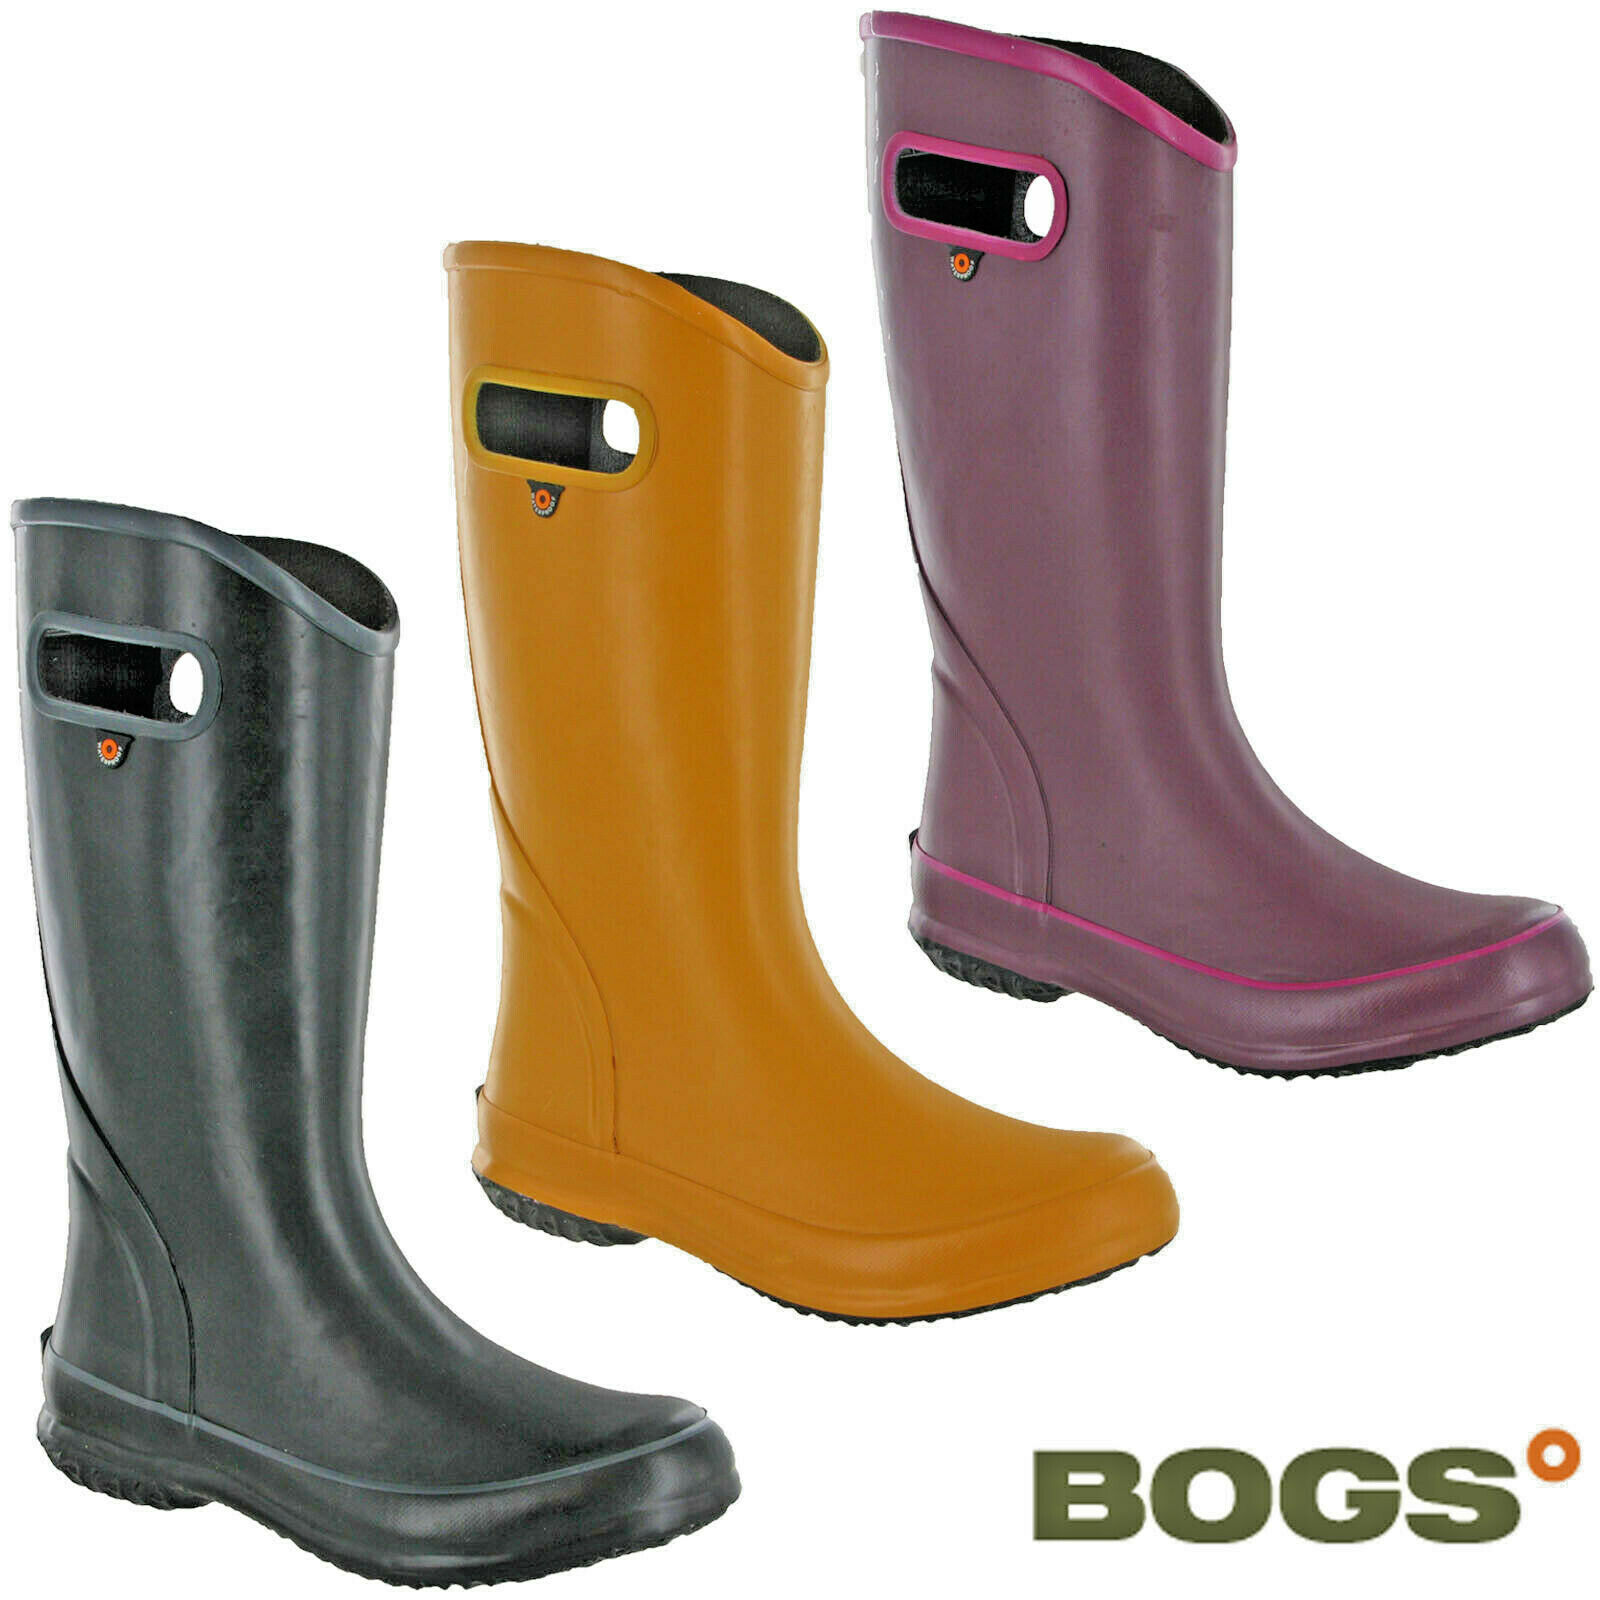 Bogs women boots waterproof rubber flexible lightweight summer solid boots